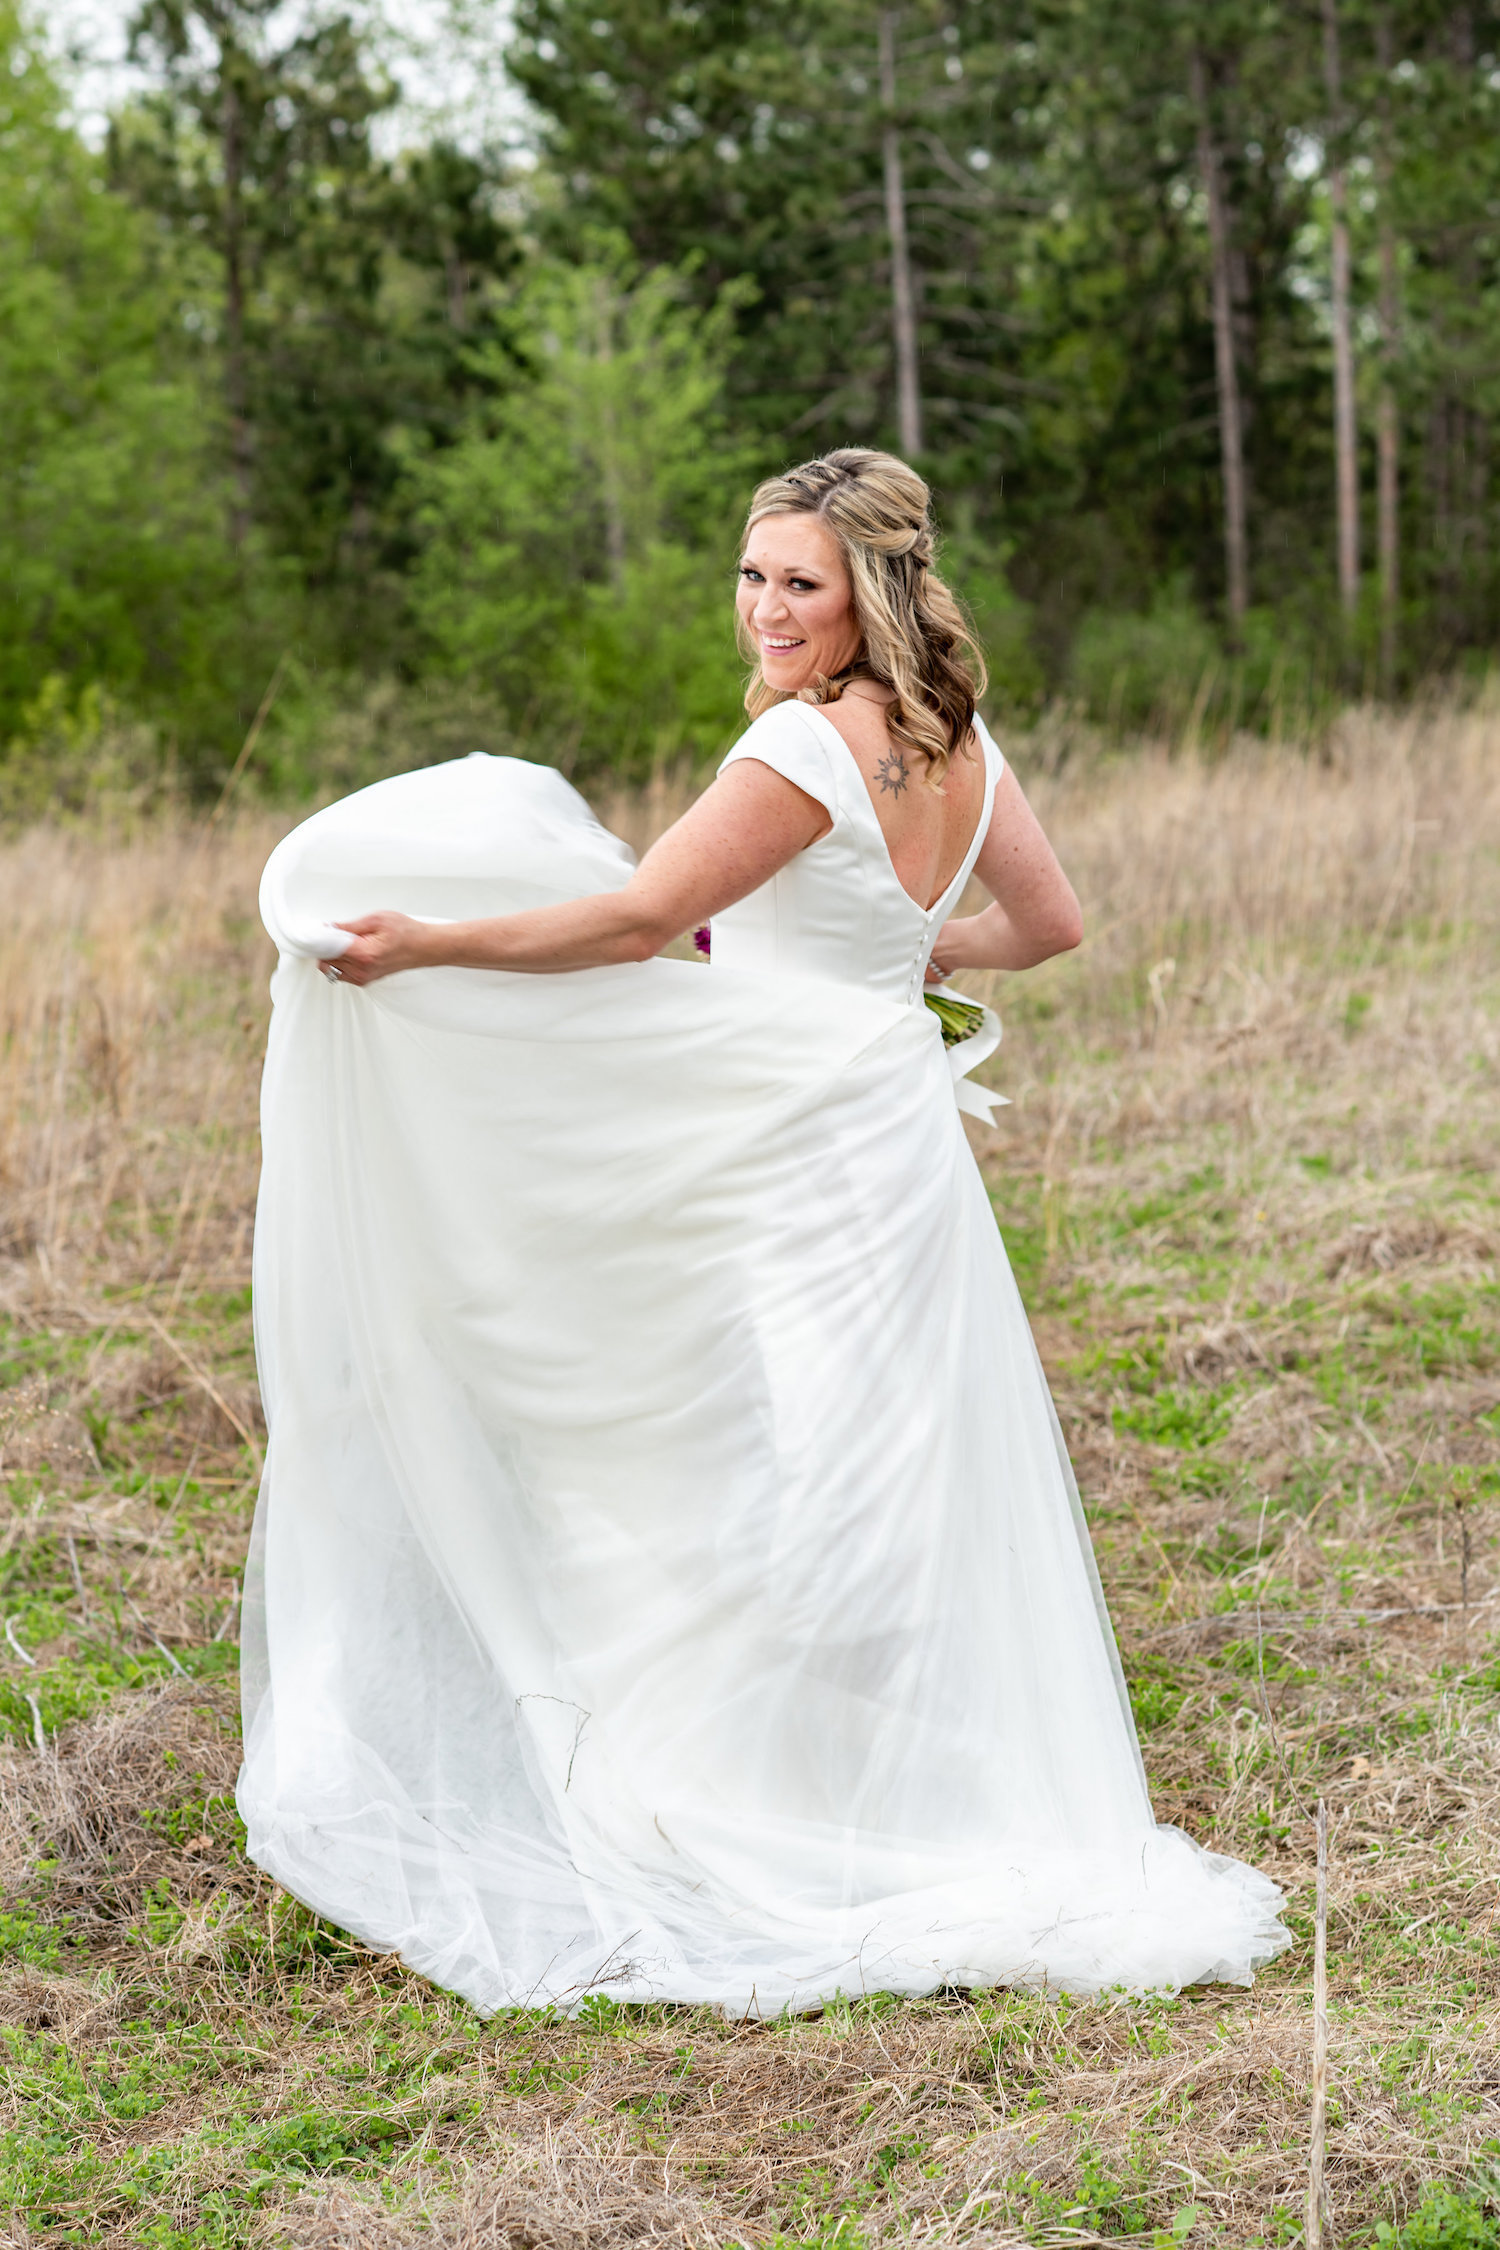 Sarah and Mark | Hope Glen Farm | Kelly Birch Photo | Sixpence Events & Planning wedding planning in Minnesota | bride twirling in sleeved dress with back tattoo